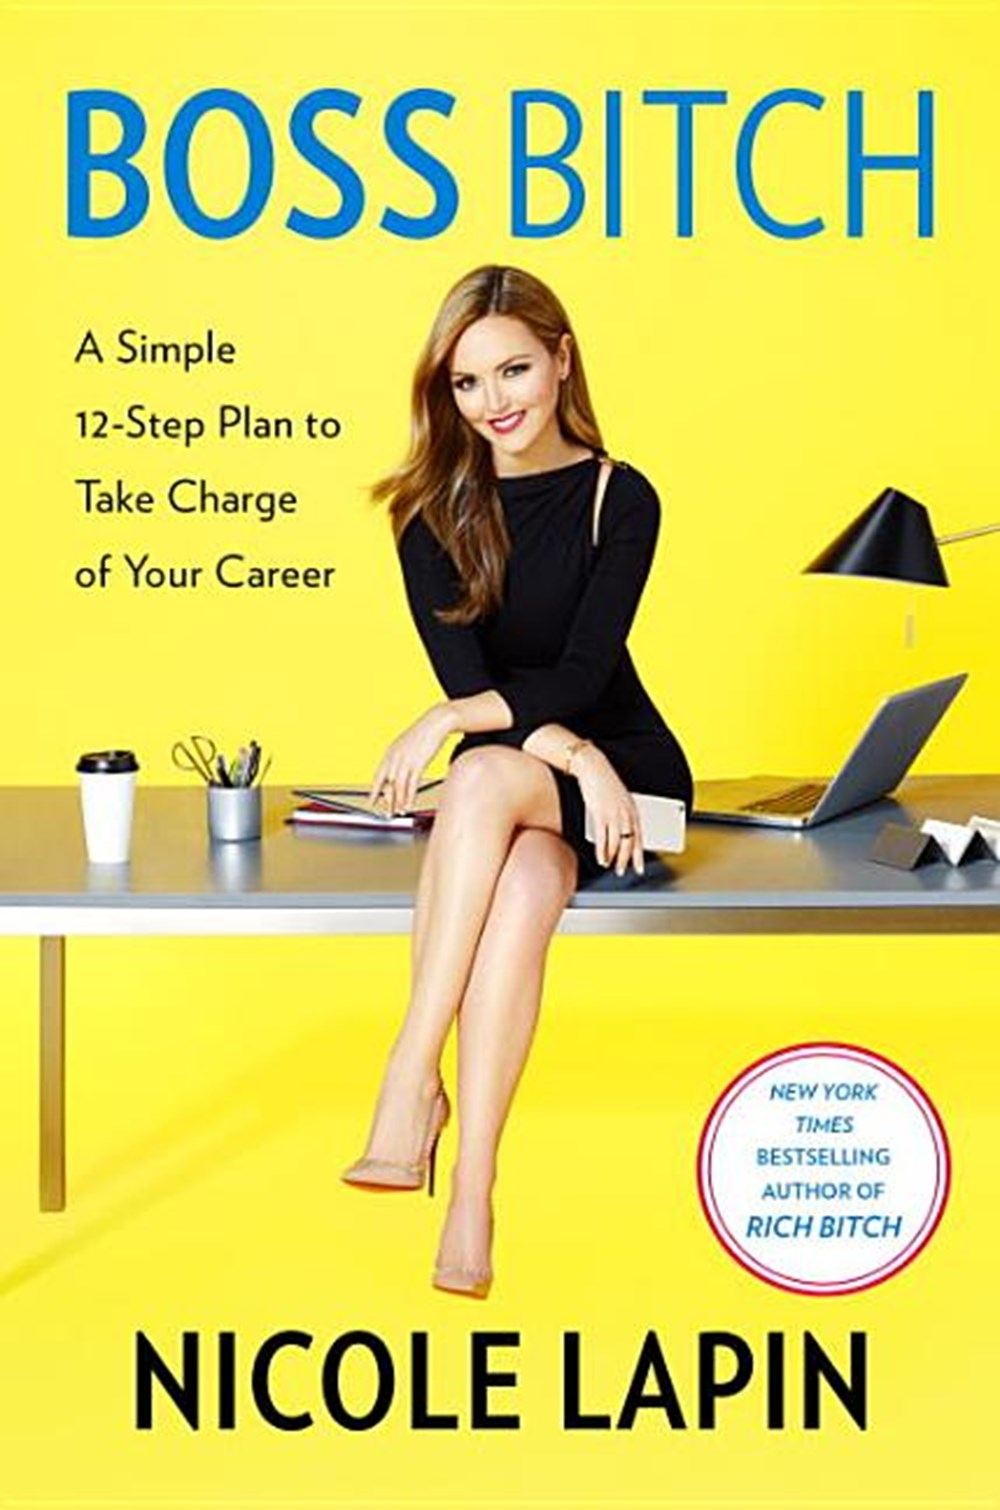 Boss Bitch A Simple 12-Step Plan to Take Charge of Your Career